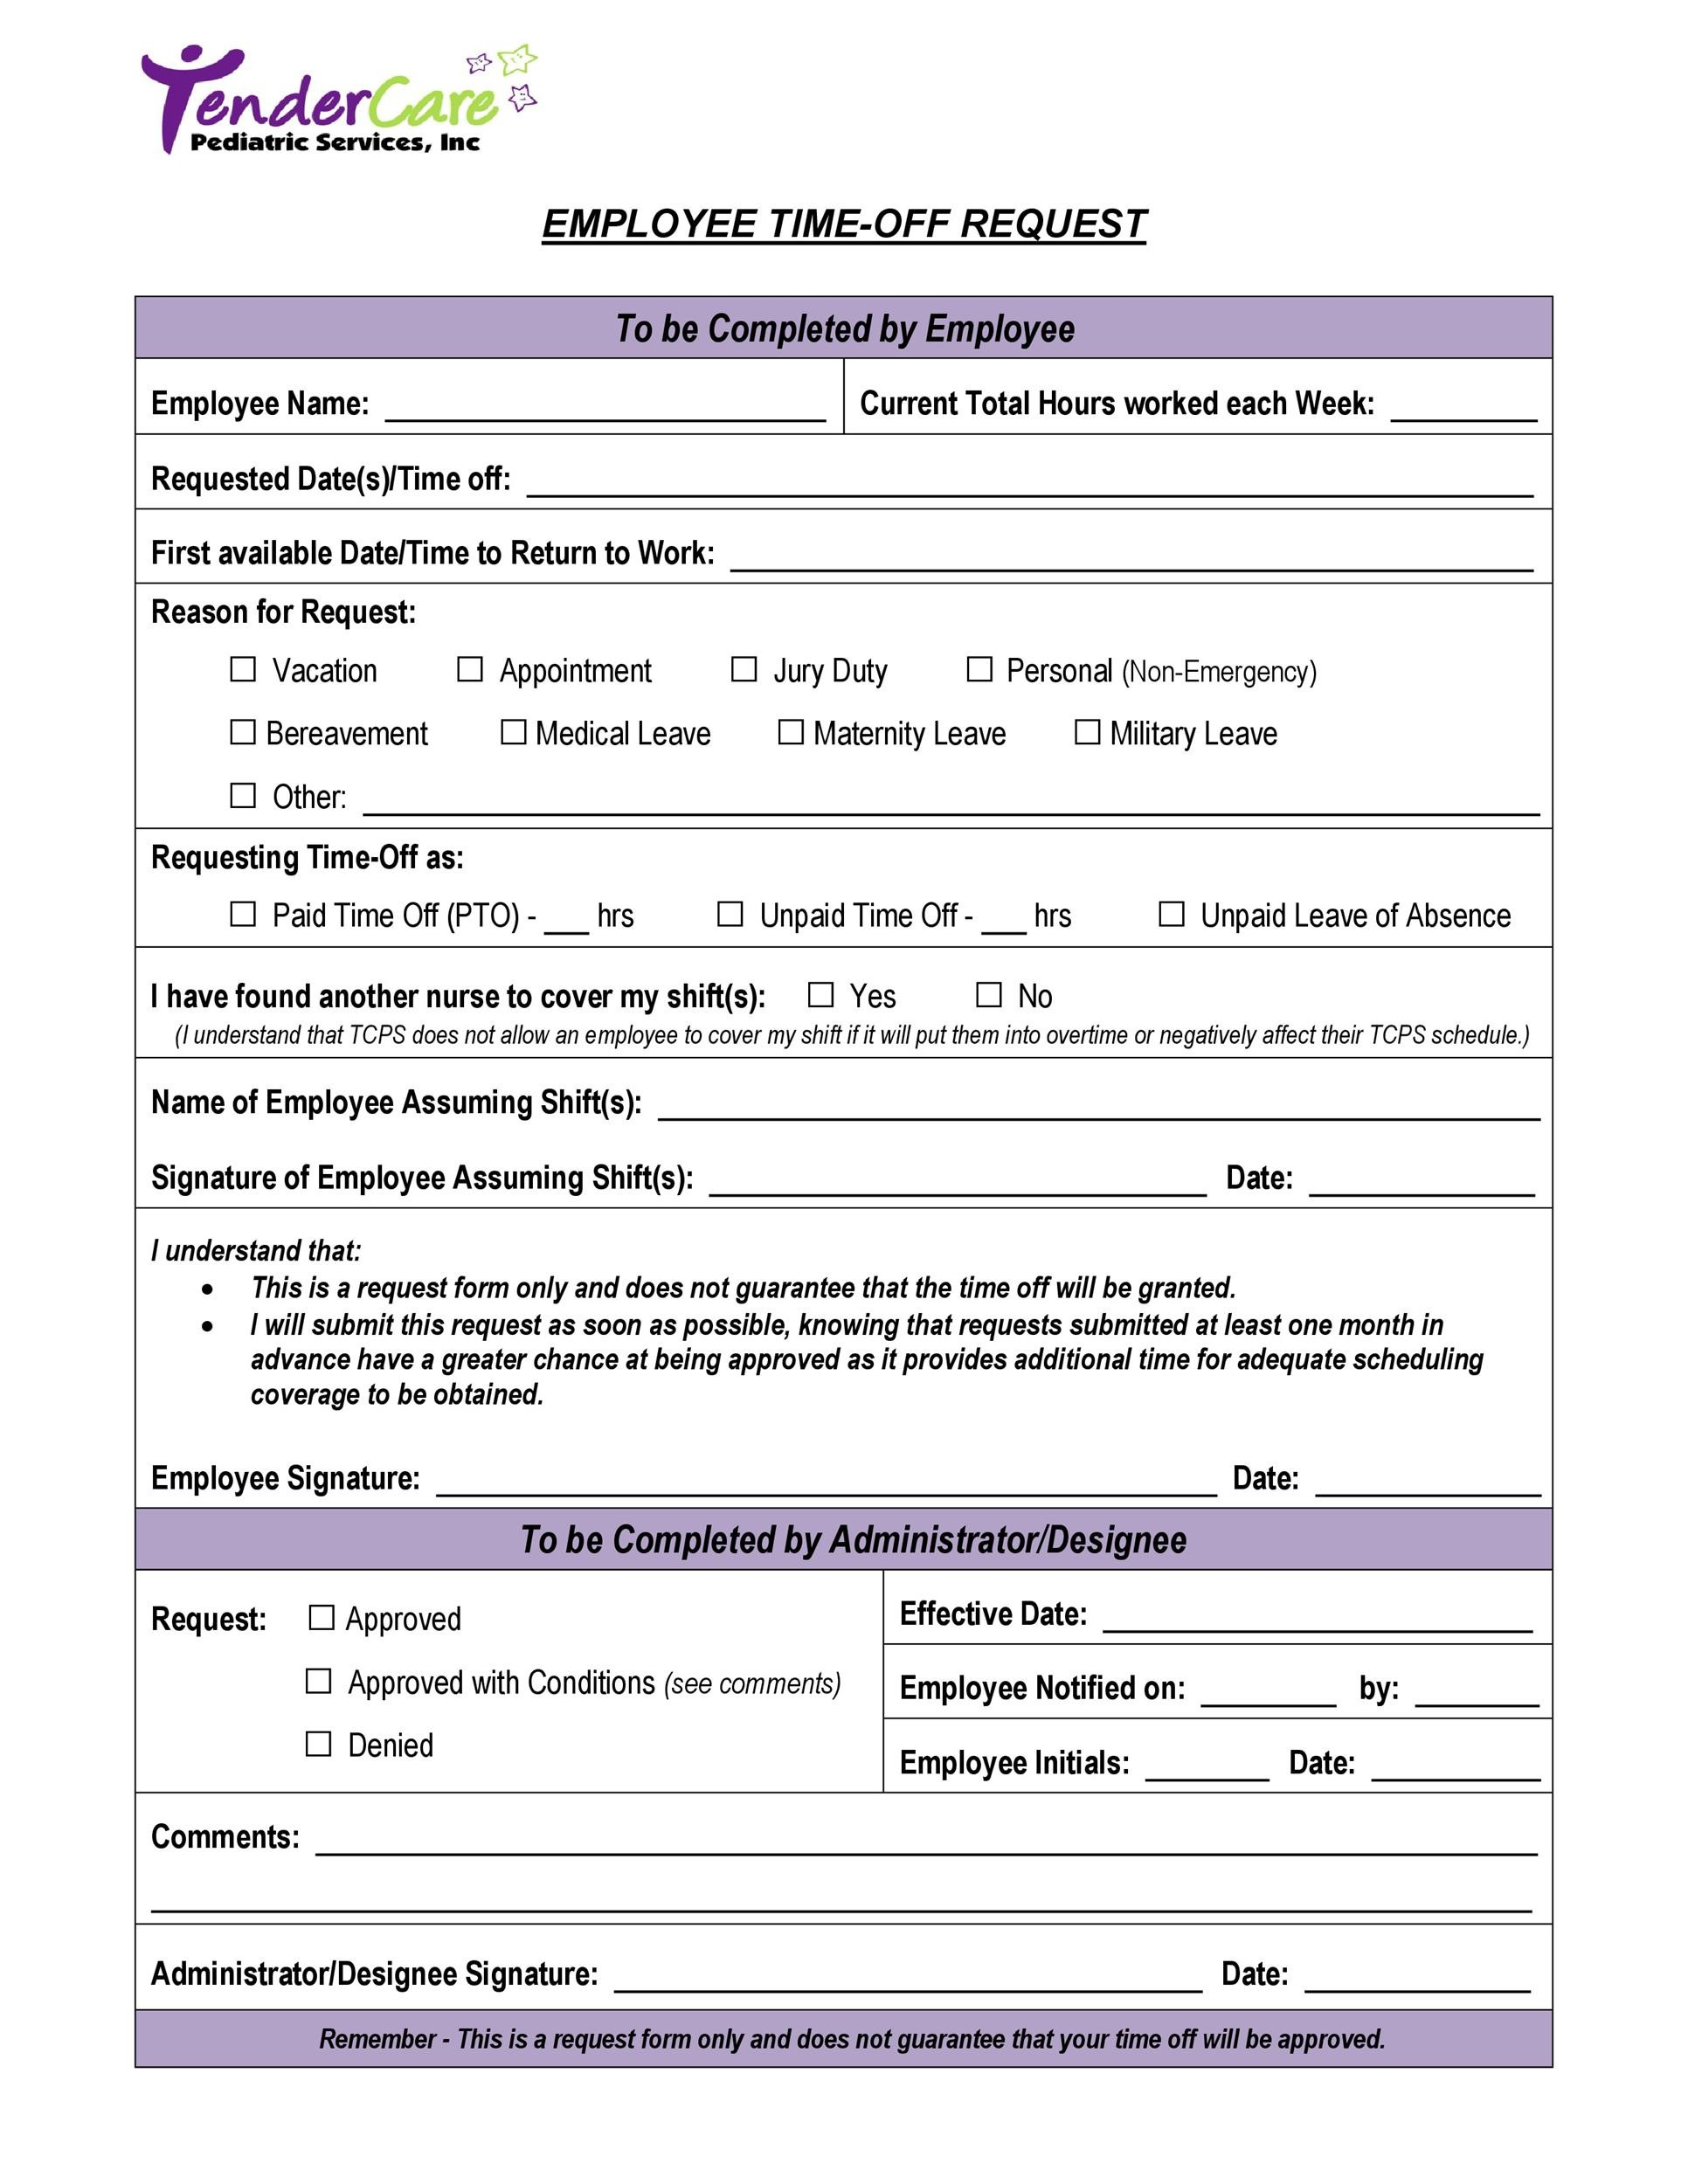 40+ Effective Time Off Request Forms  Templates - Template Lab - time off request form sample